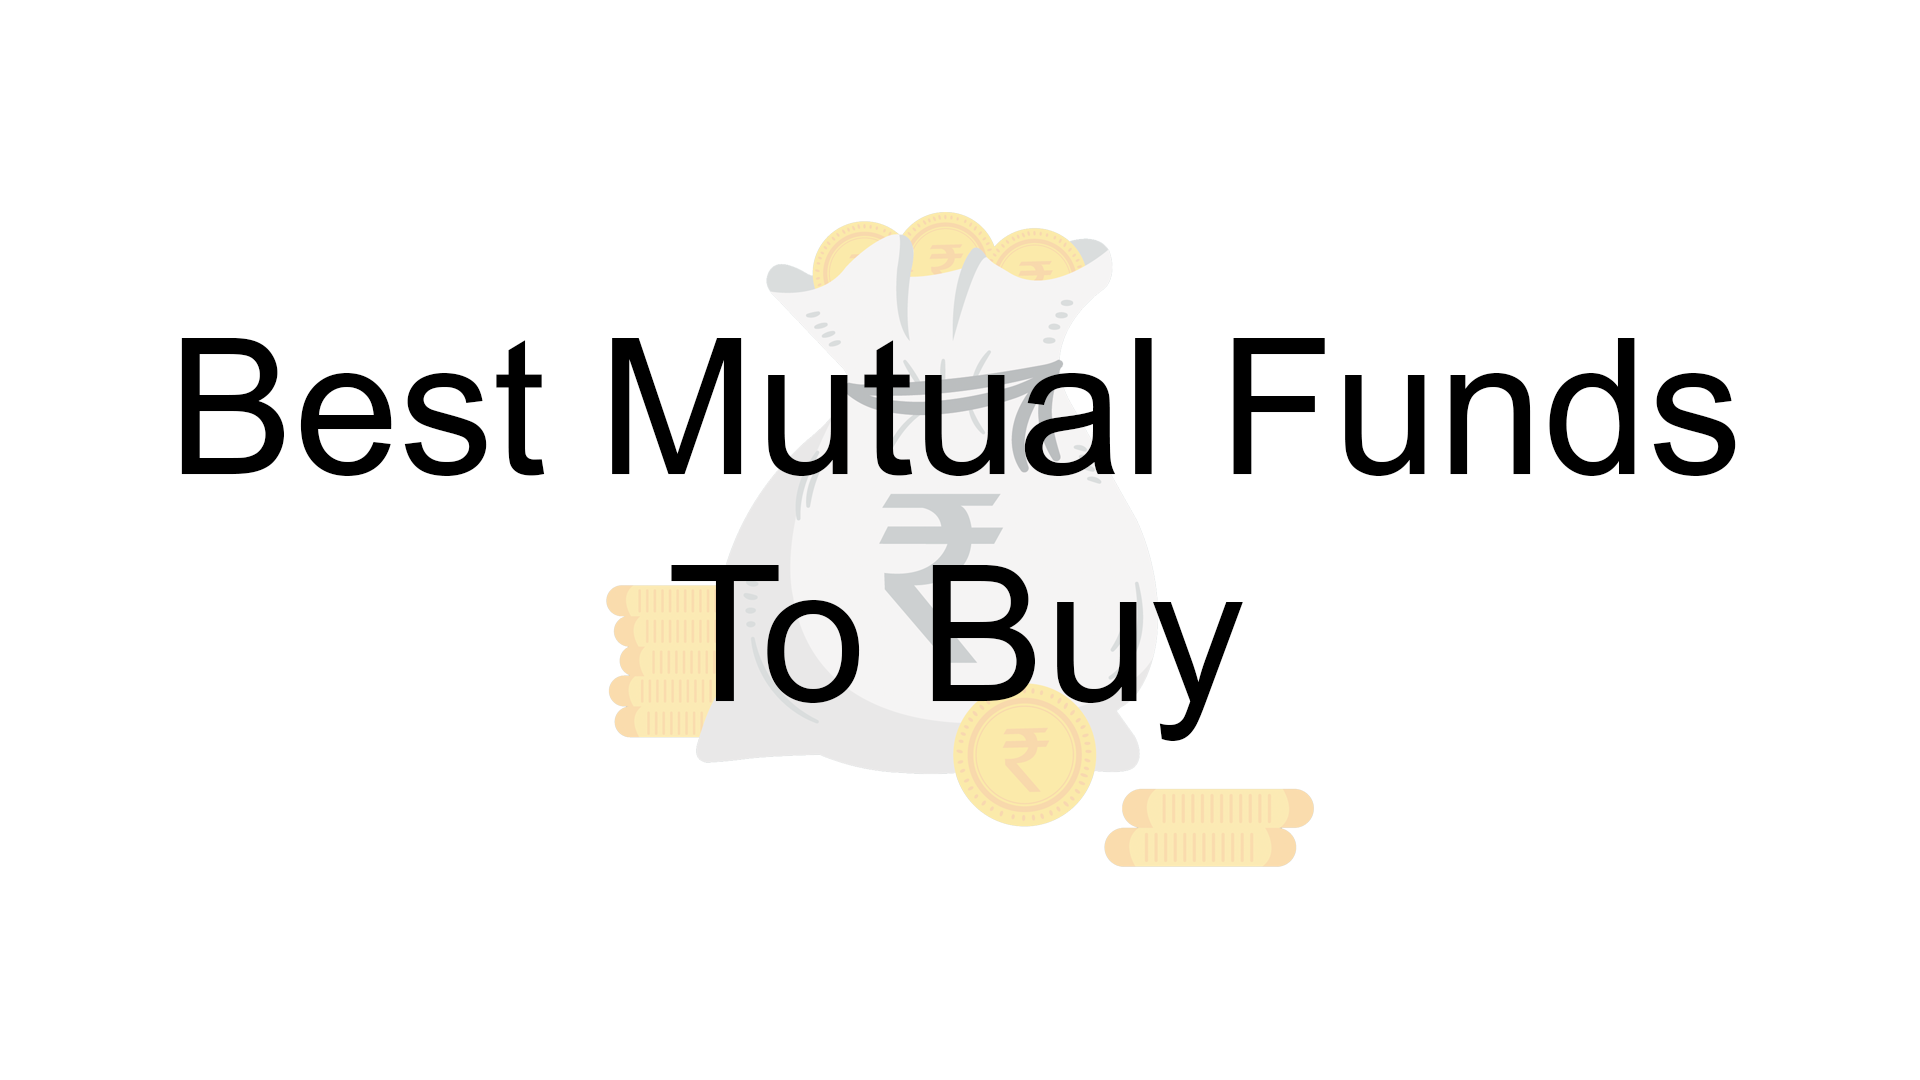 Best Mutual Funds to Buy in 2019 Based Your Investment Goals